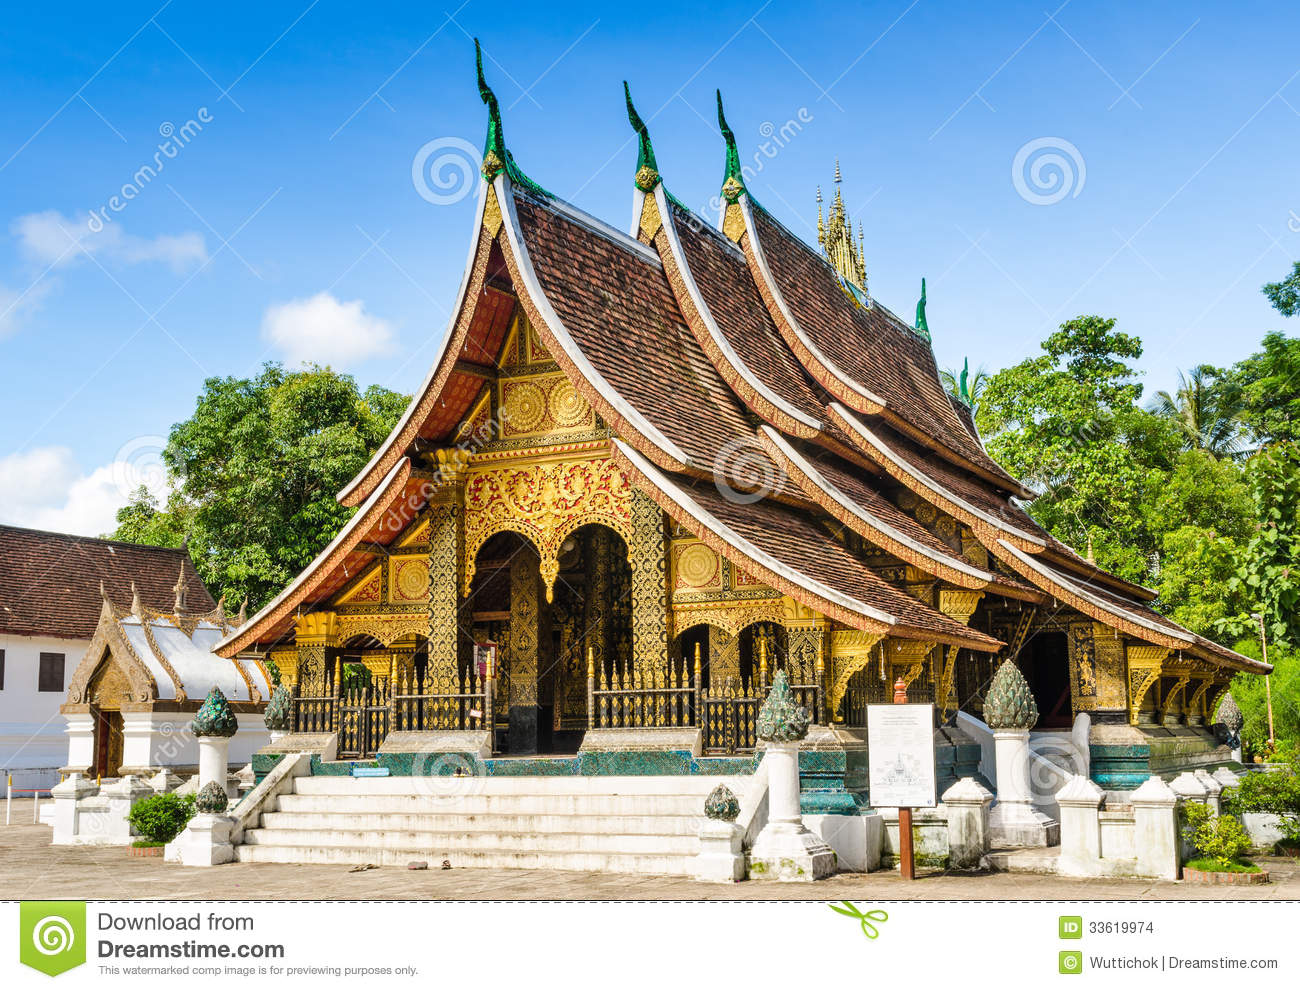 341] Golden Temple (Laos) | Wonders of the World, Best places to visit